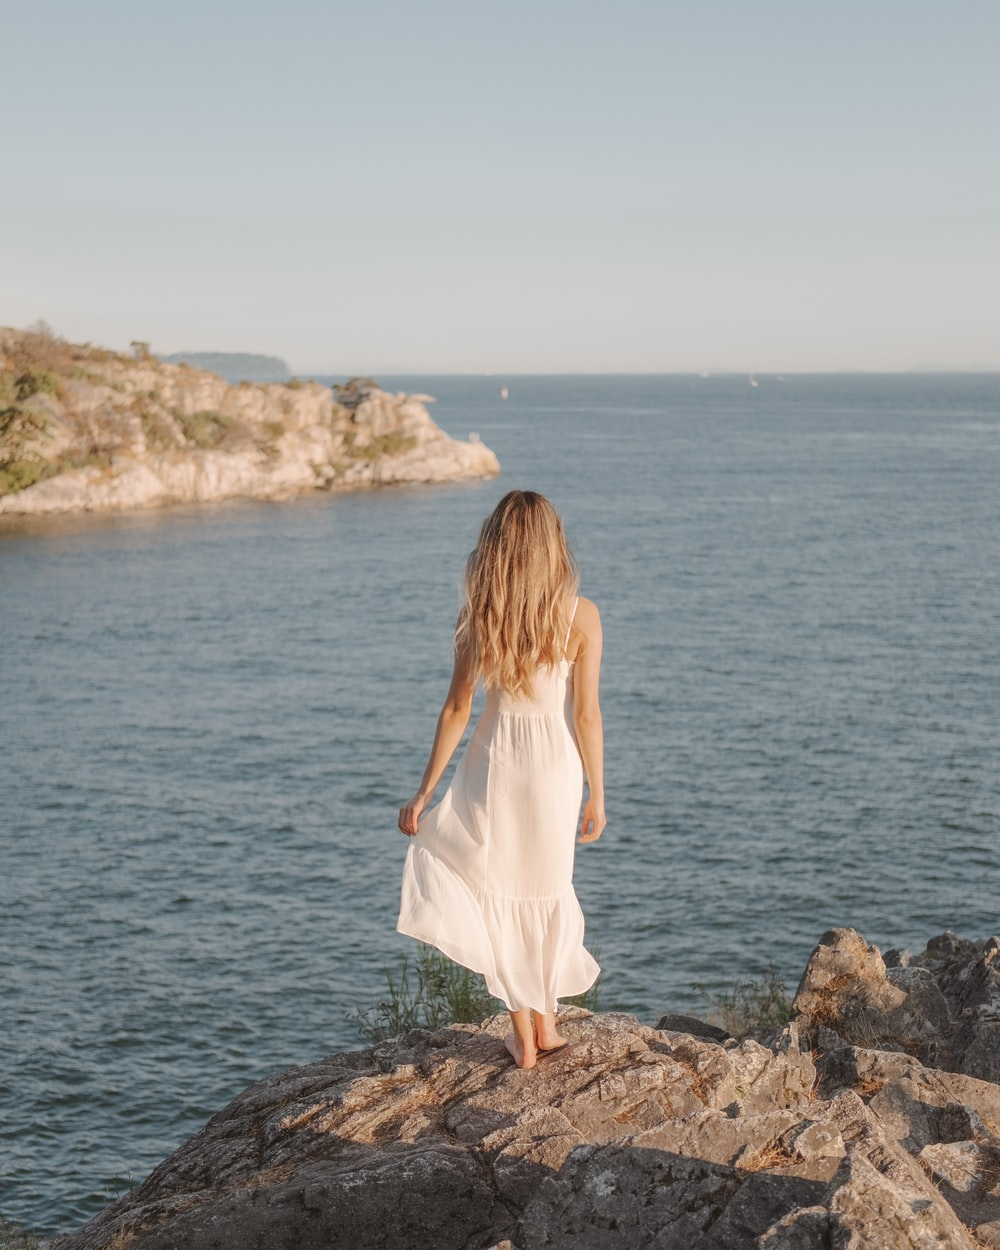 woman in white dress standing on rock near body of water during daytime